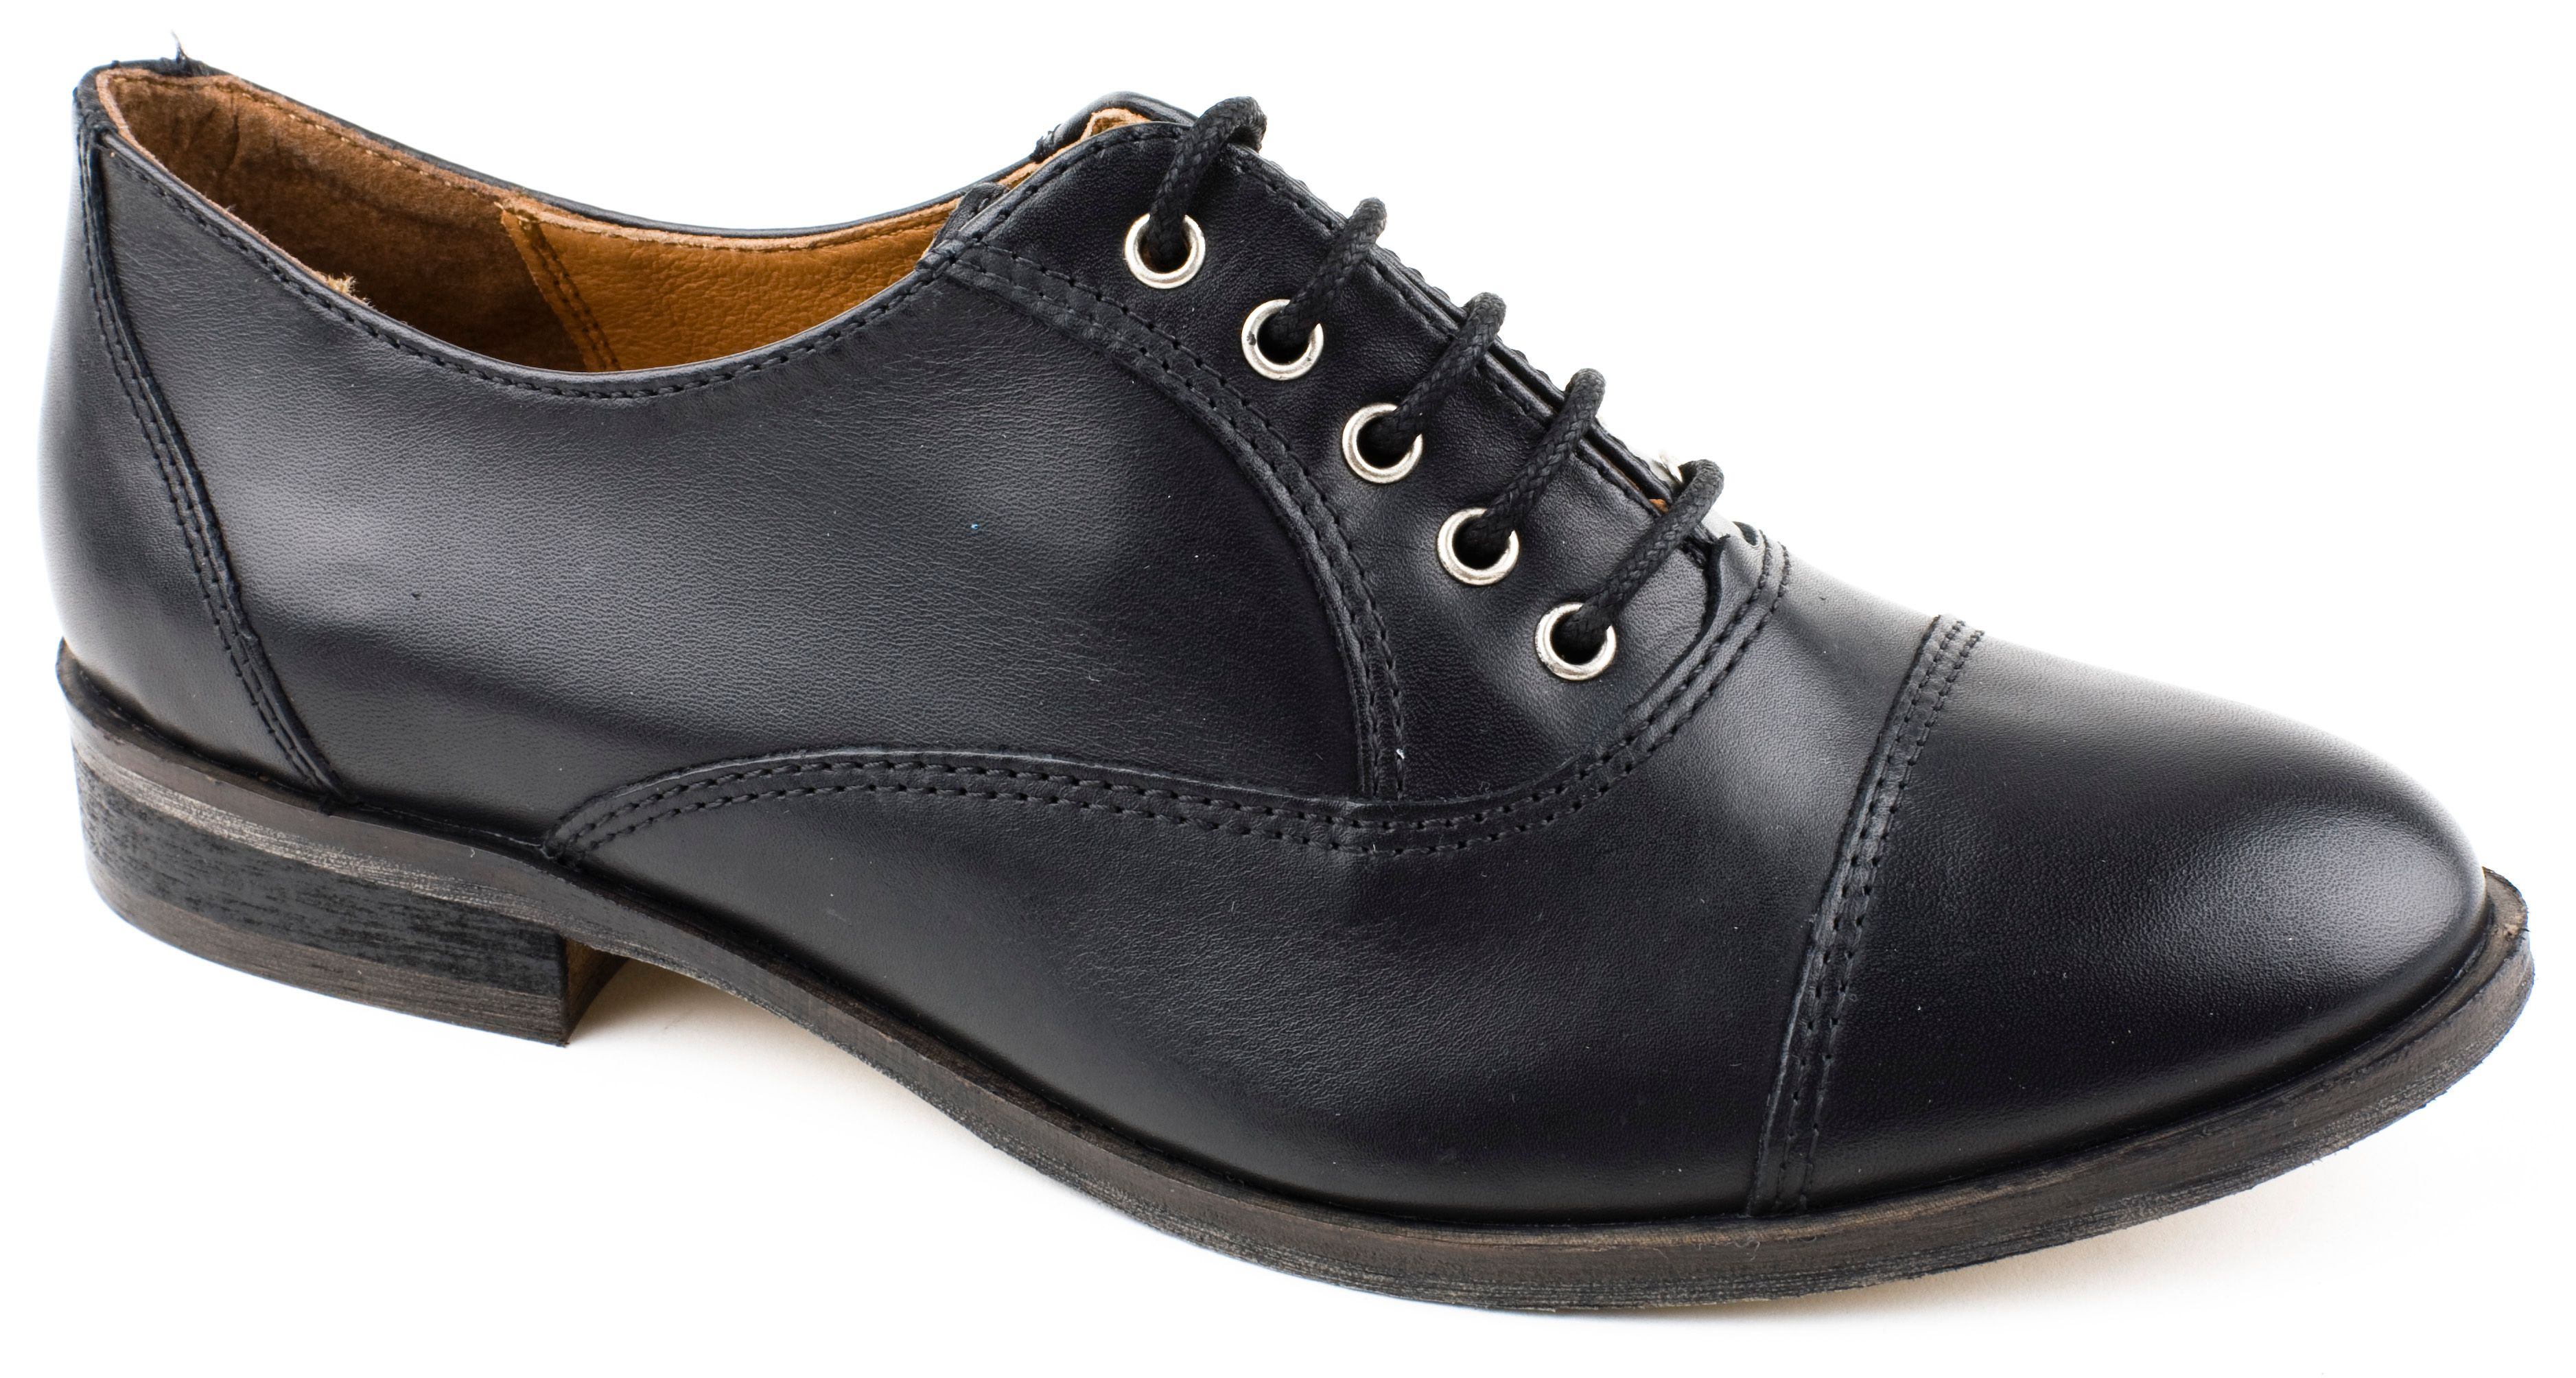 Guildhall brogue shoes